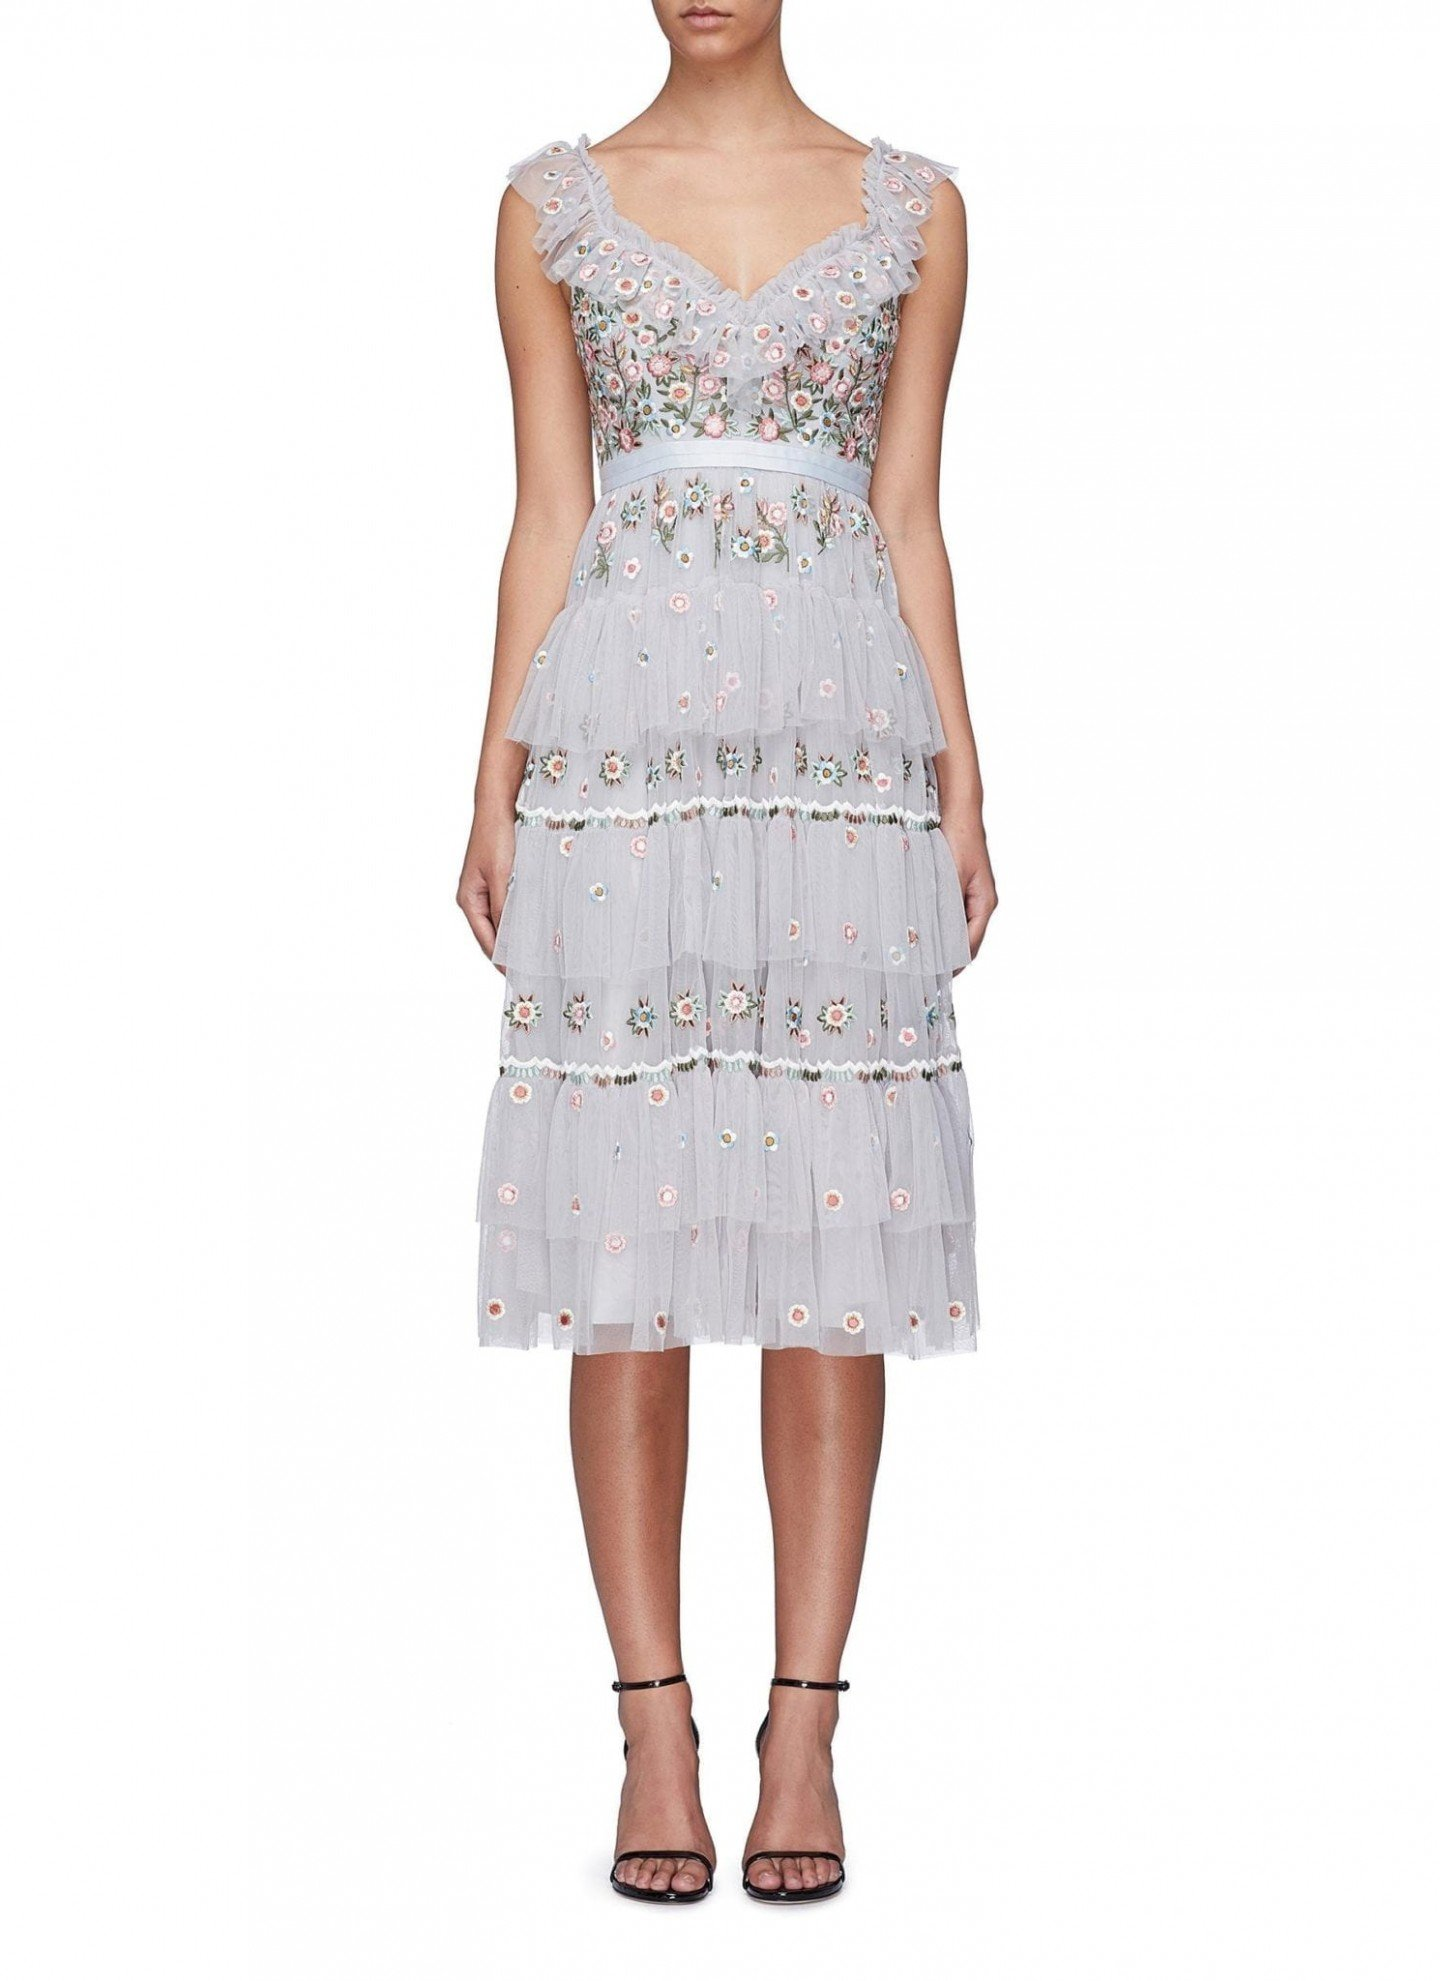 NEEDLE & THREAD 'Whimsical' Floral Embroidered Tiered Tulle Powder Blue Dress